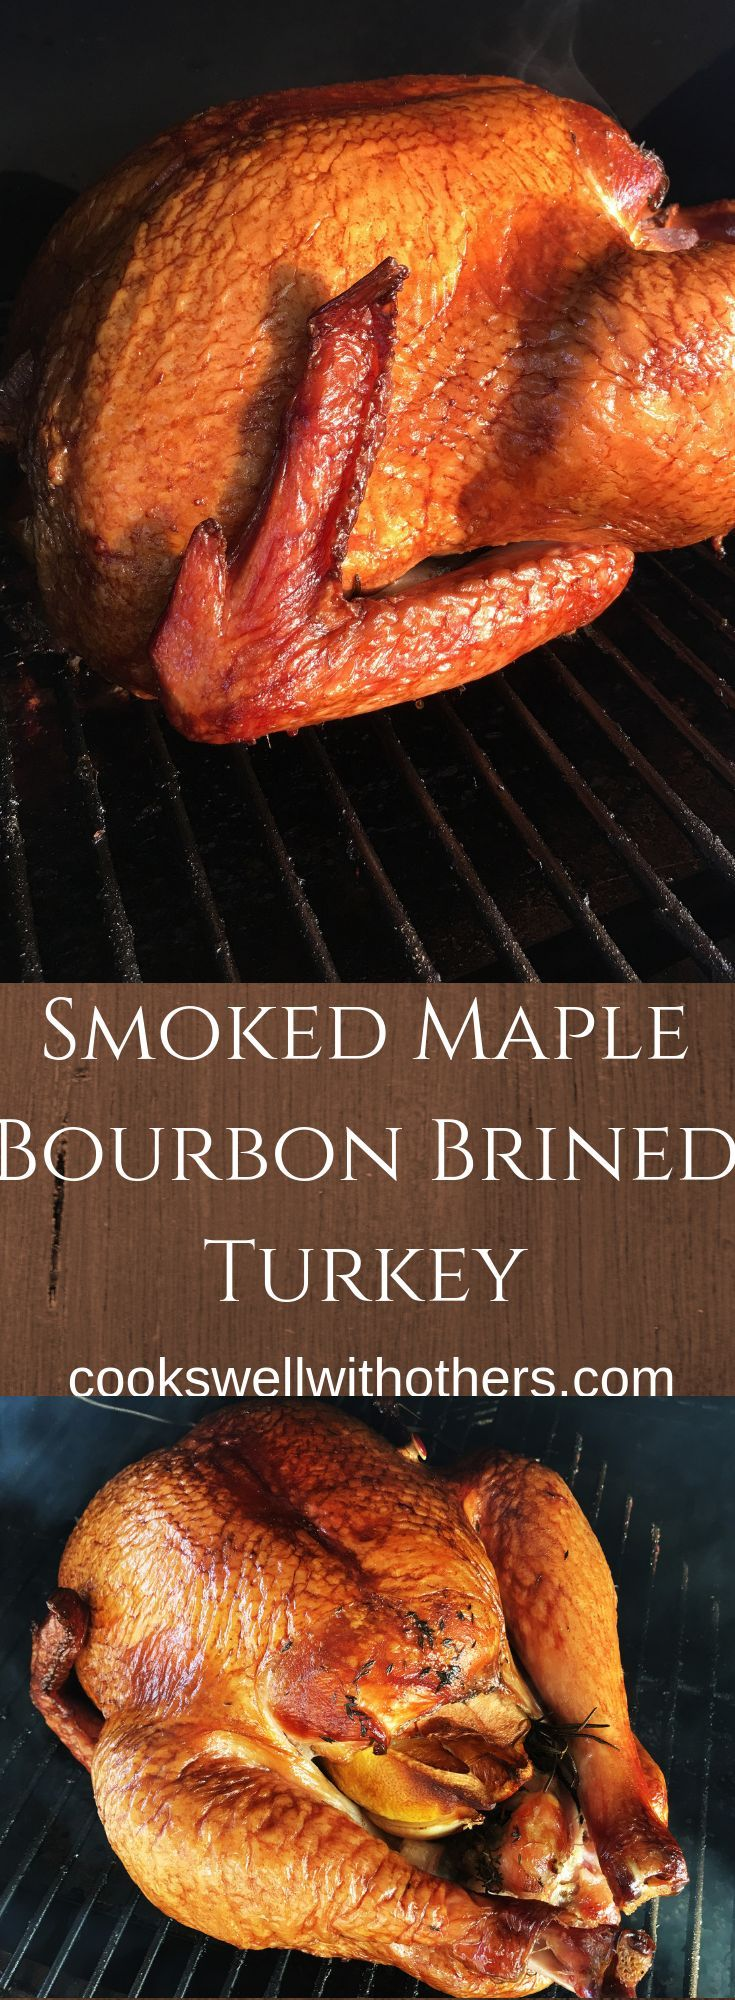 Smoked Maple Bourbon Brined Turkey - Cooks Well With Others